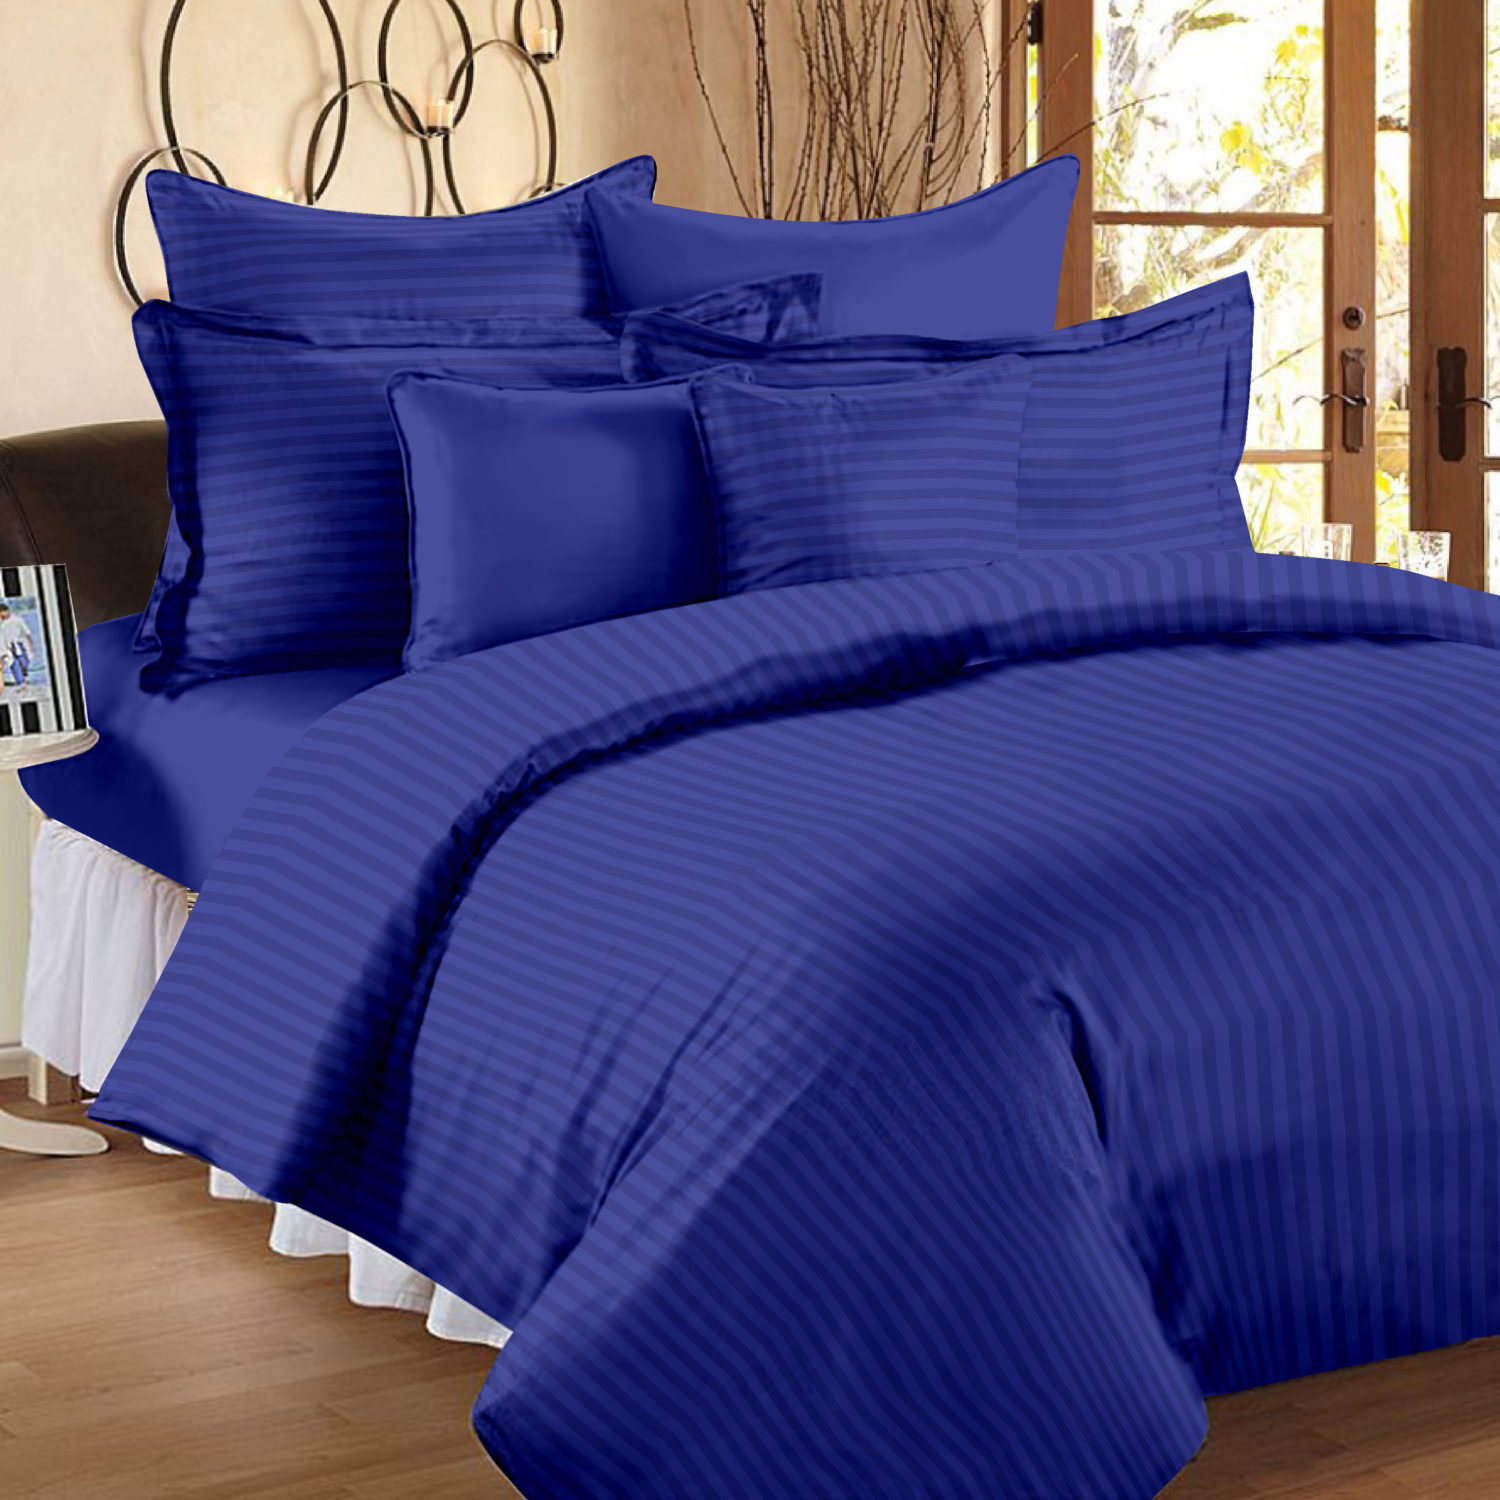 300 Tc Duvet Cover Double Size Premium Cotton